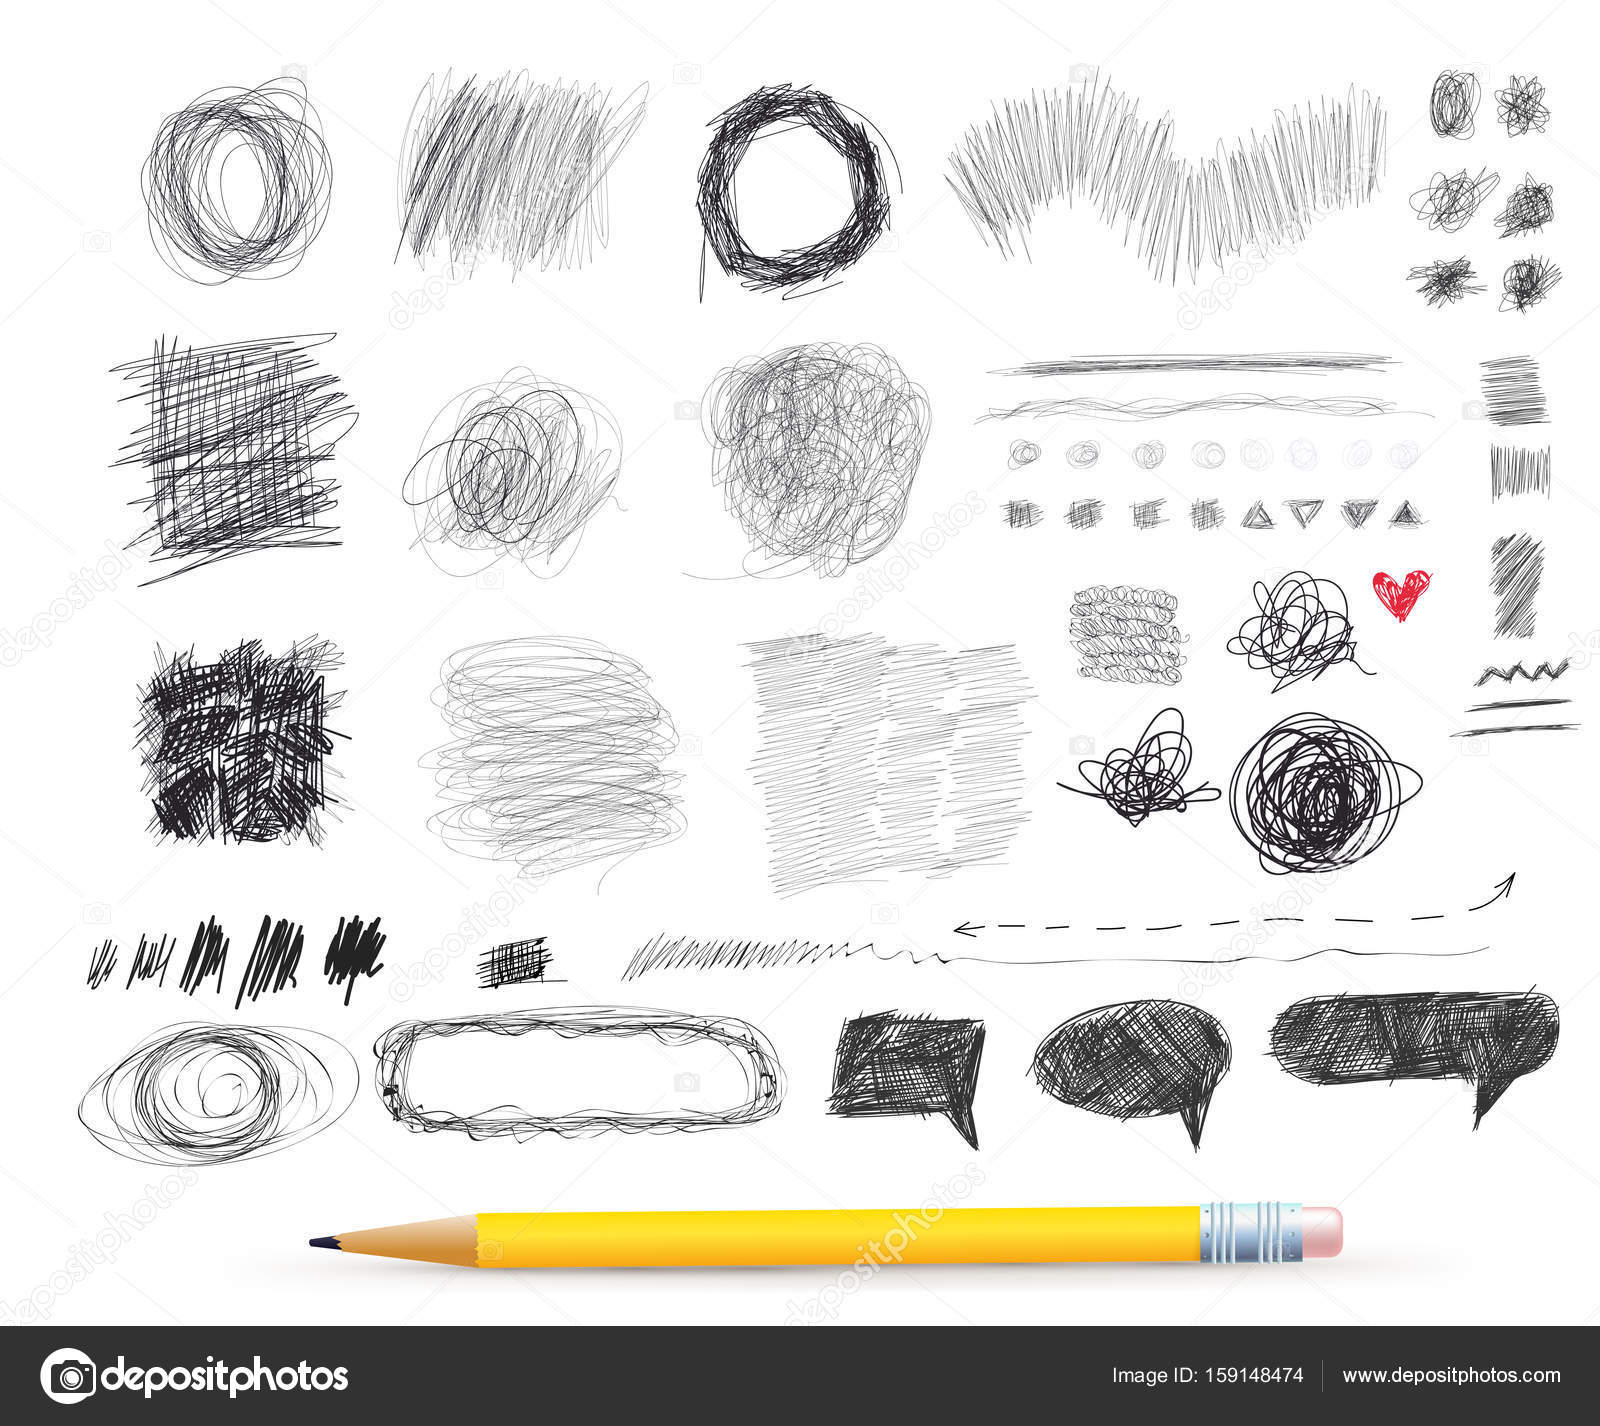 Abstract chaotic round sketch pencil drawing for your design freehand drawing vector illustration isolated on white background stock illustration